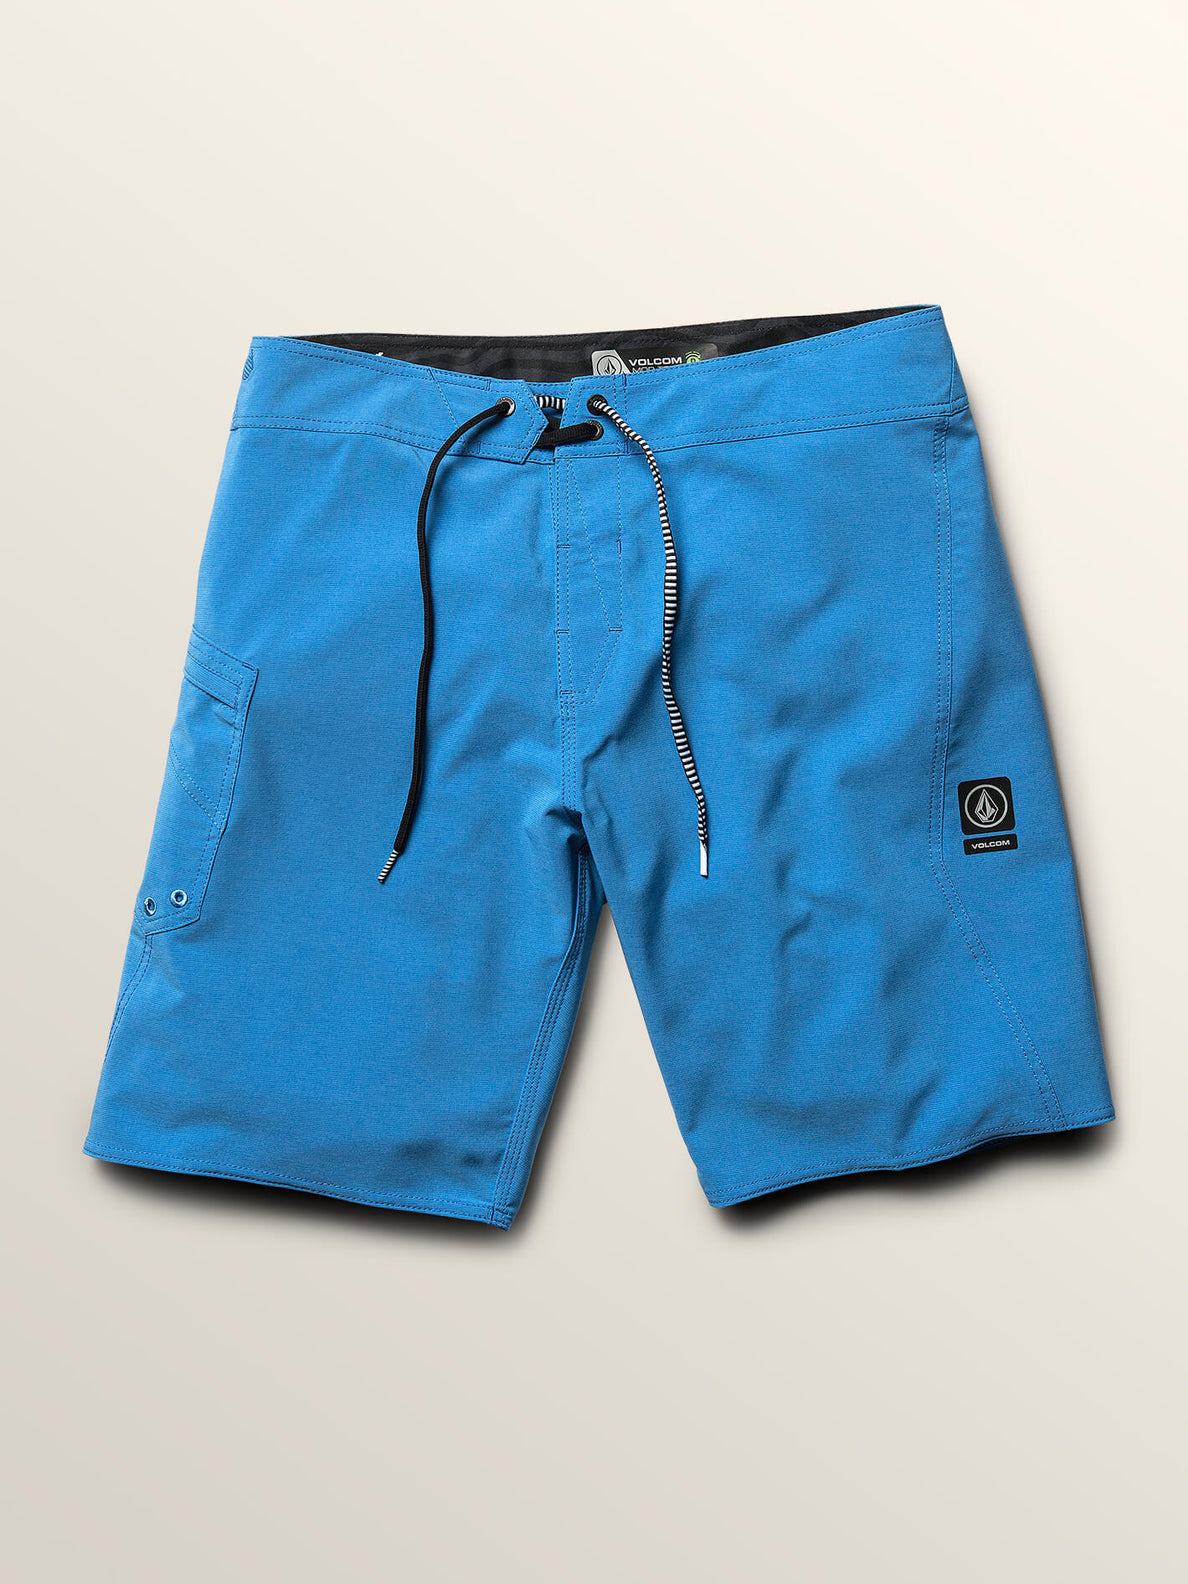 Lido Solid Mod Boardshorts In Free Blue, Third Alternate View